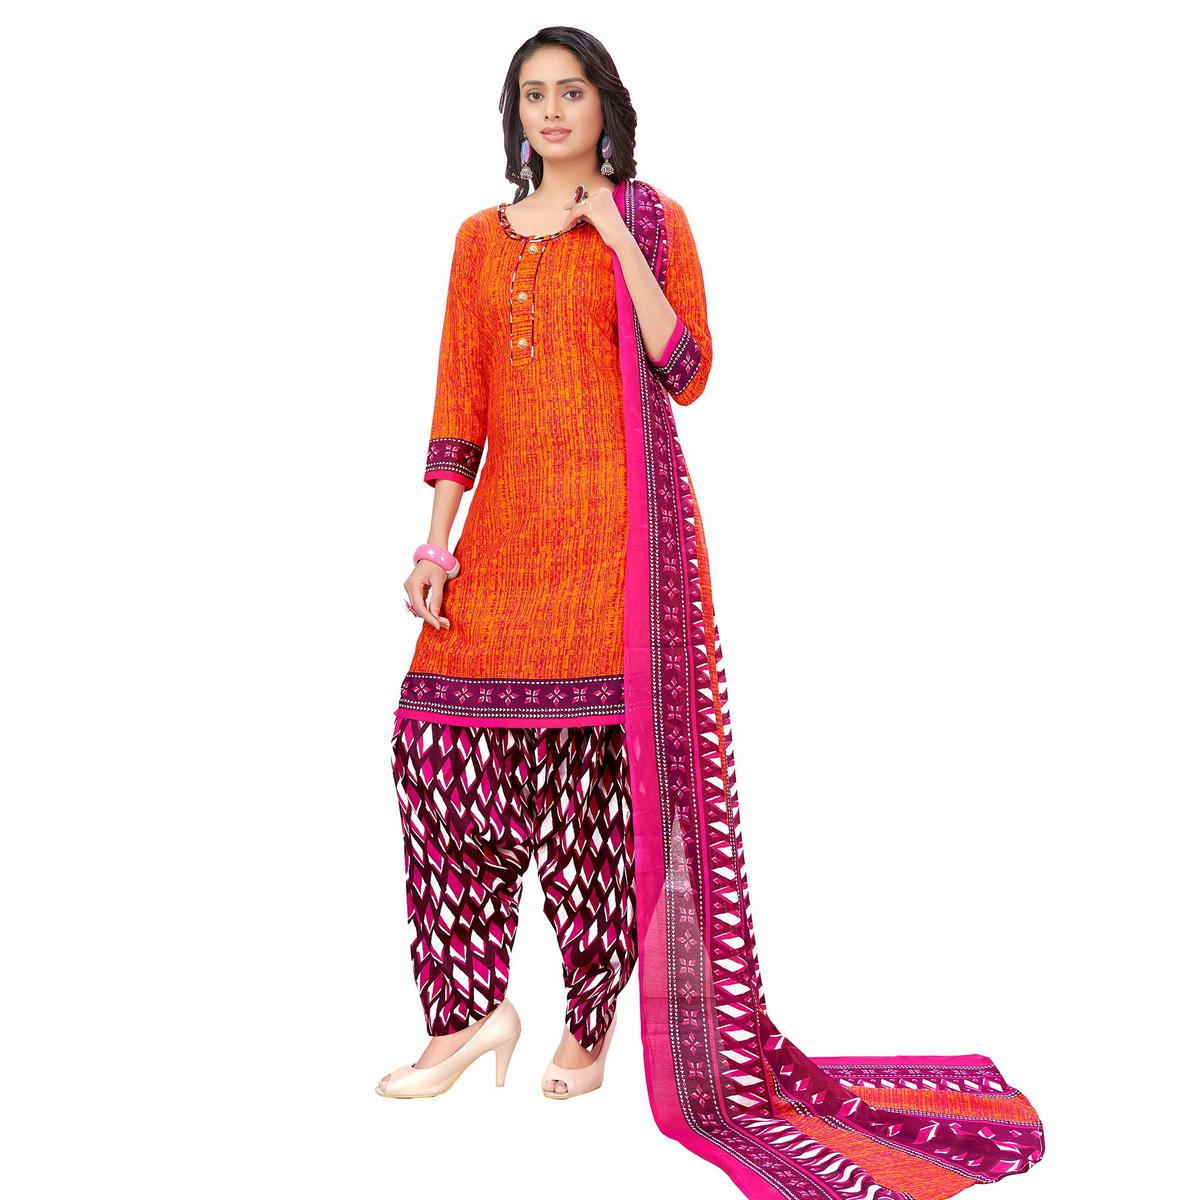 Classy Orange Colored Casual Printed Cotton Dress Material